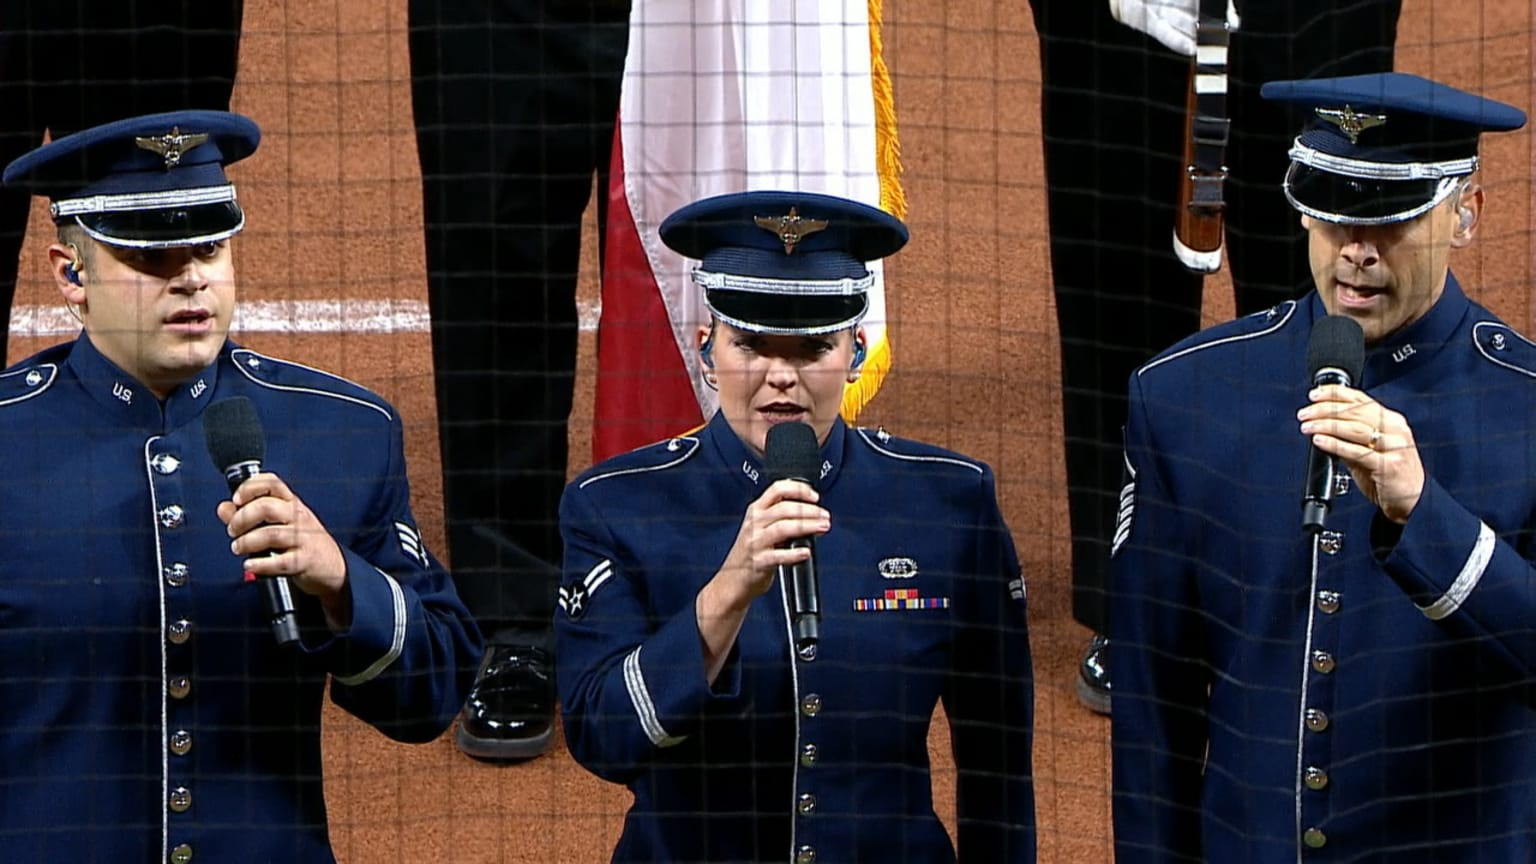 Air Force Academy national anthem | 10/14/2019